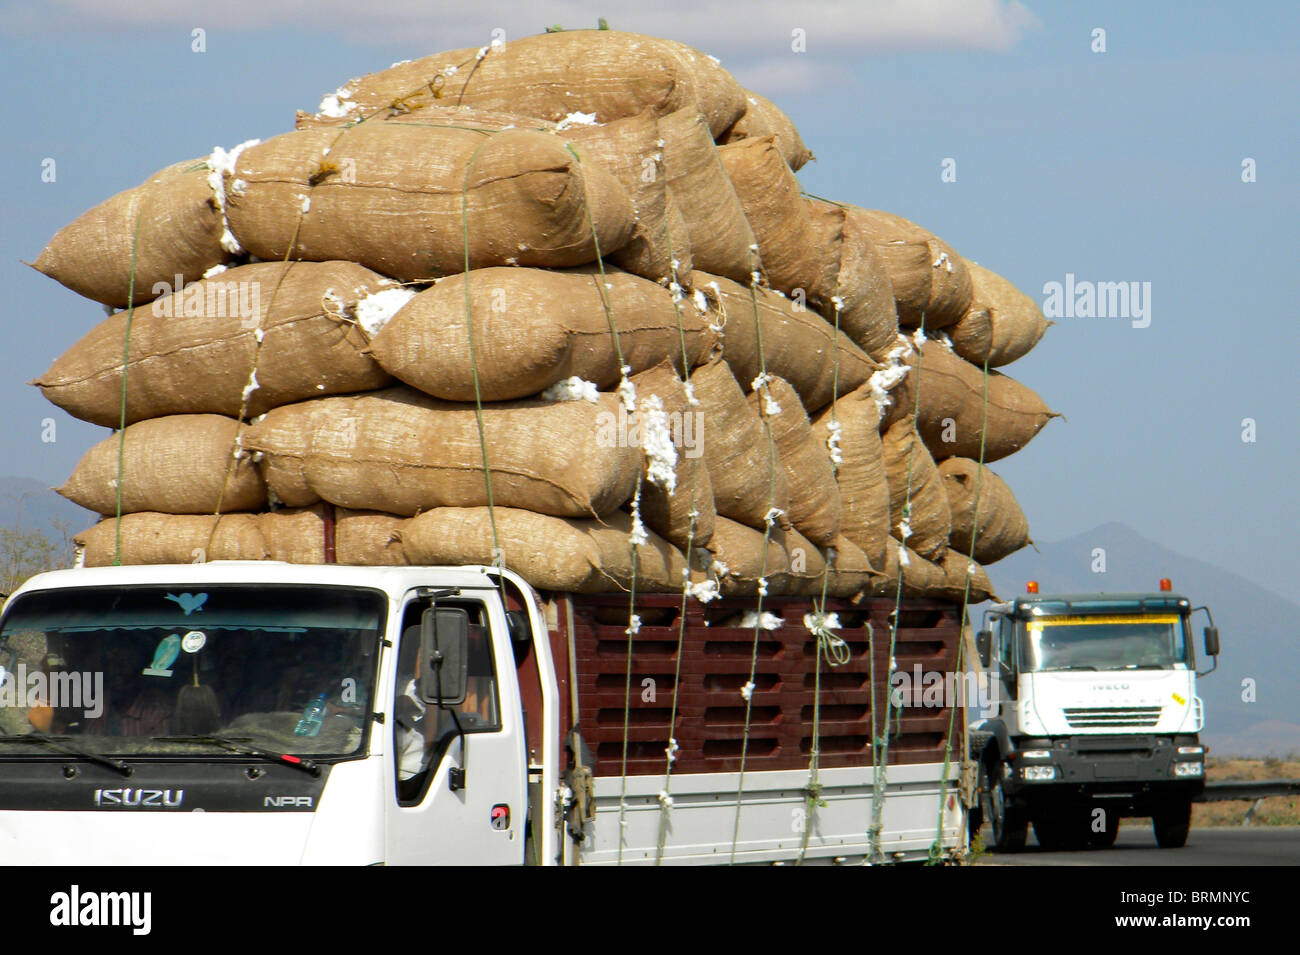 A truck loaded with hessian bags cotton - Stock Image